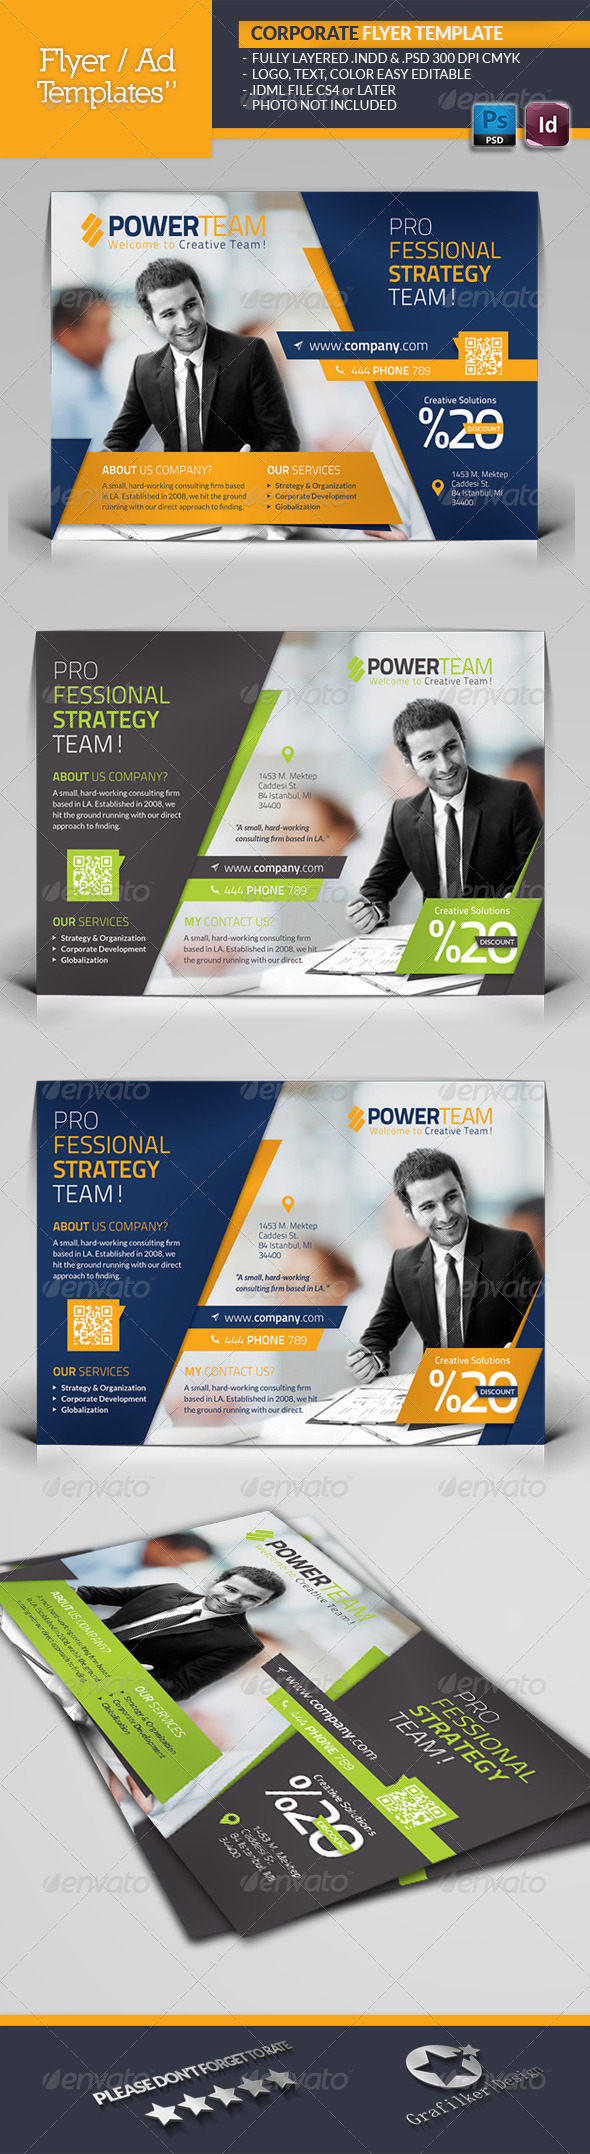 GraphicRiver Corporate Flyer Template 6501779